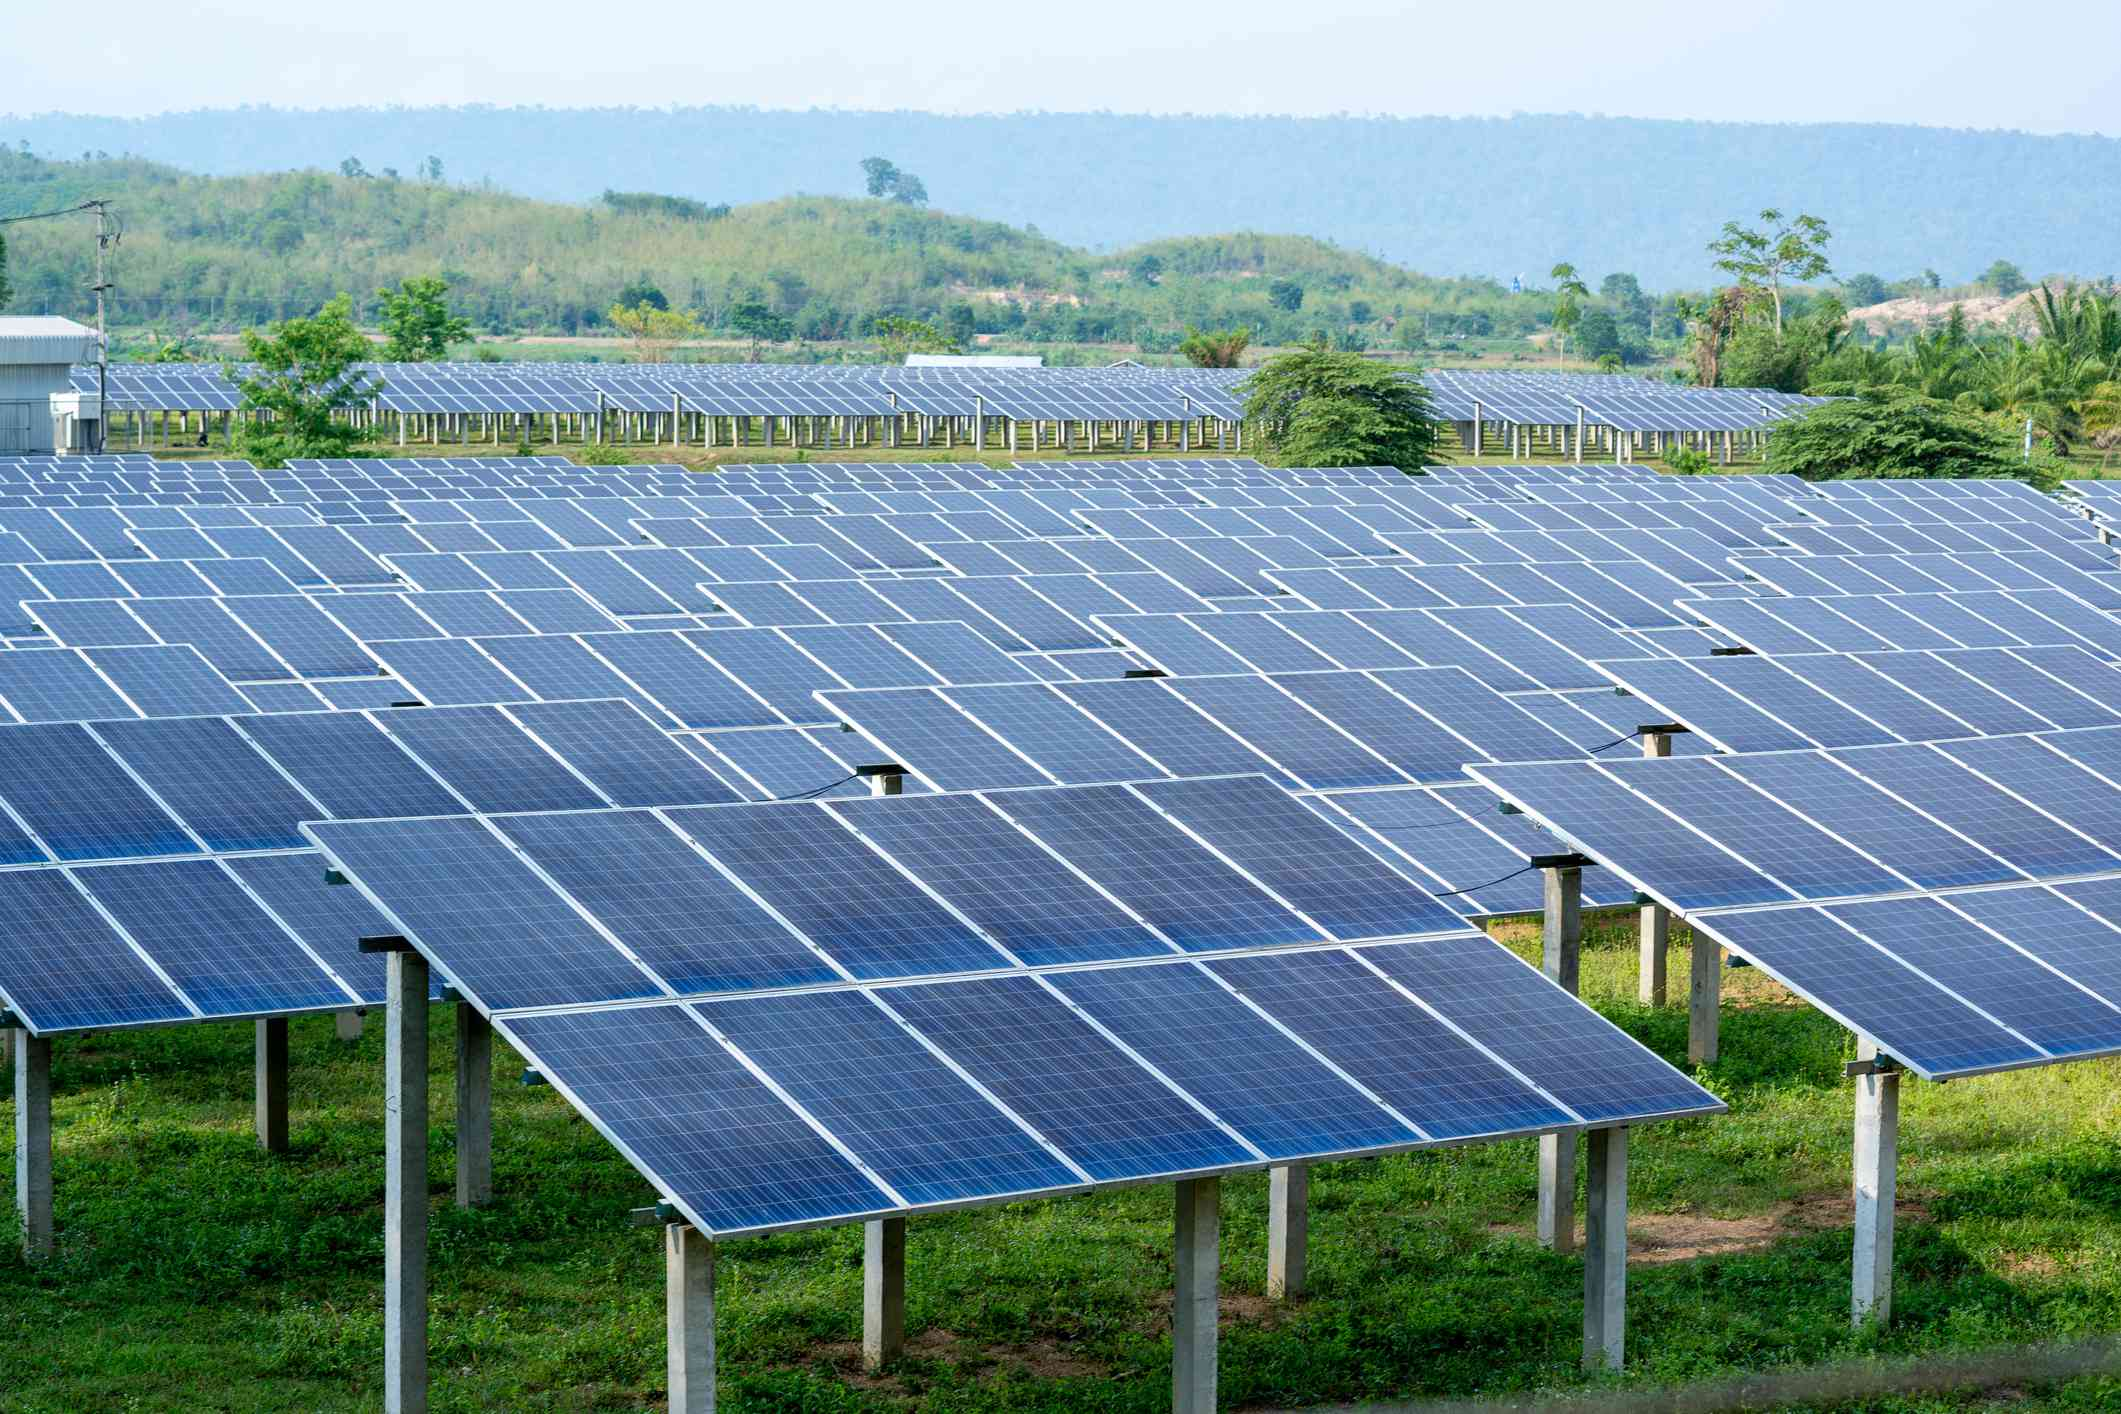 Solar panel station in the field of a country side.